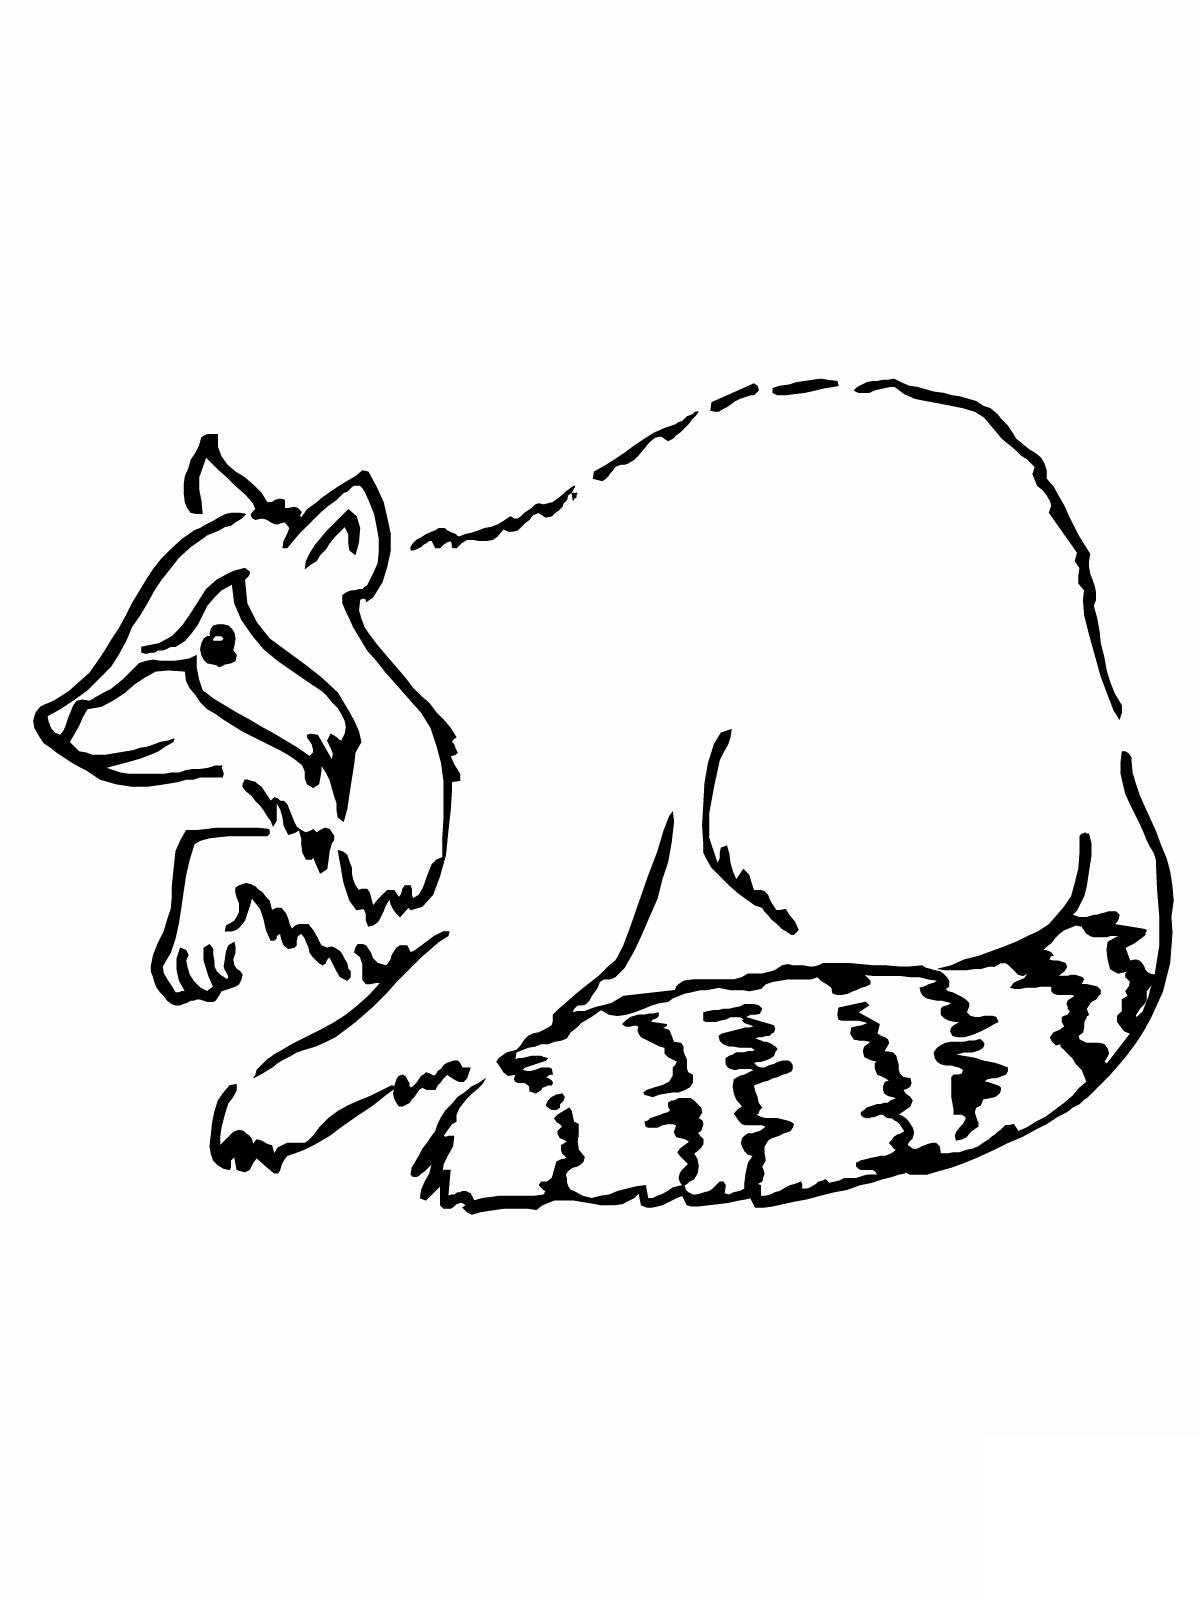 5 Images of Realistic Raccoon Coloring Pages Printable